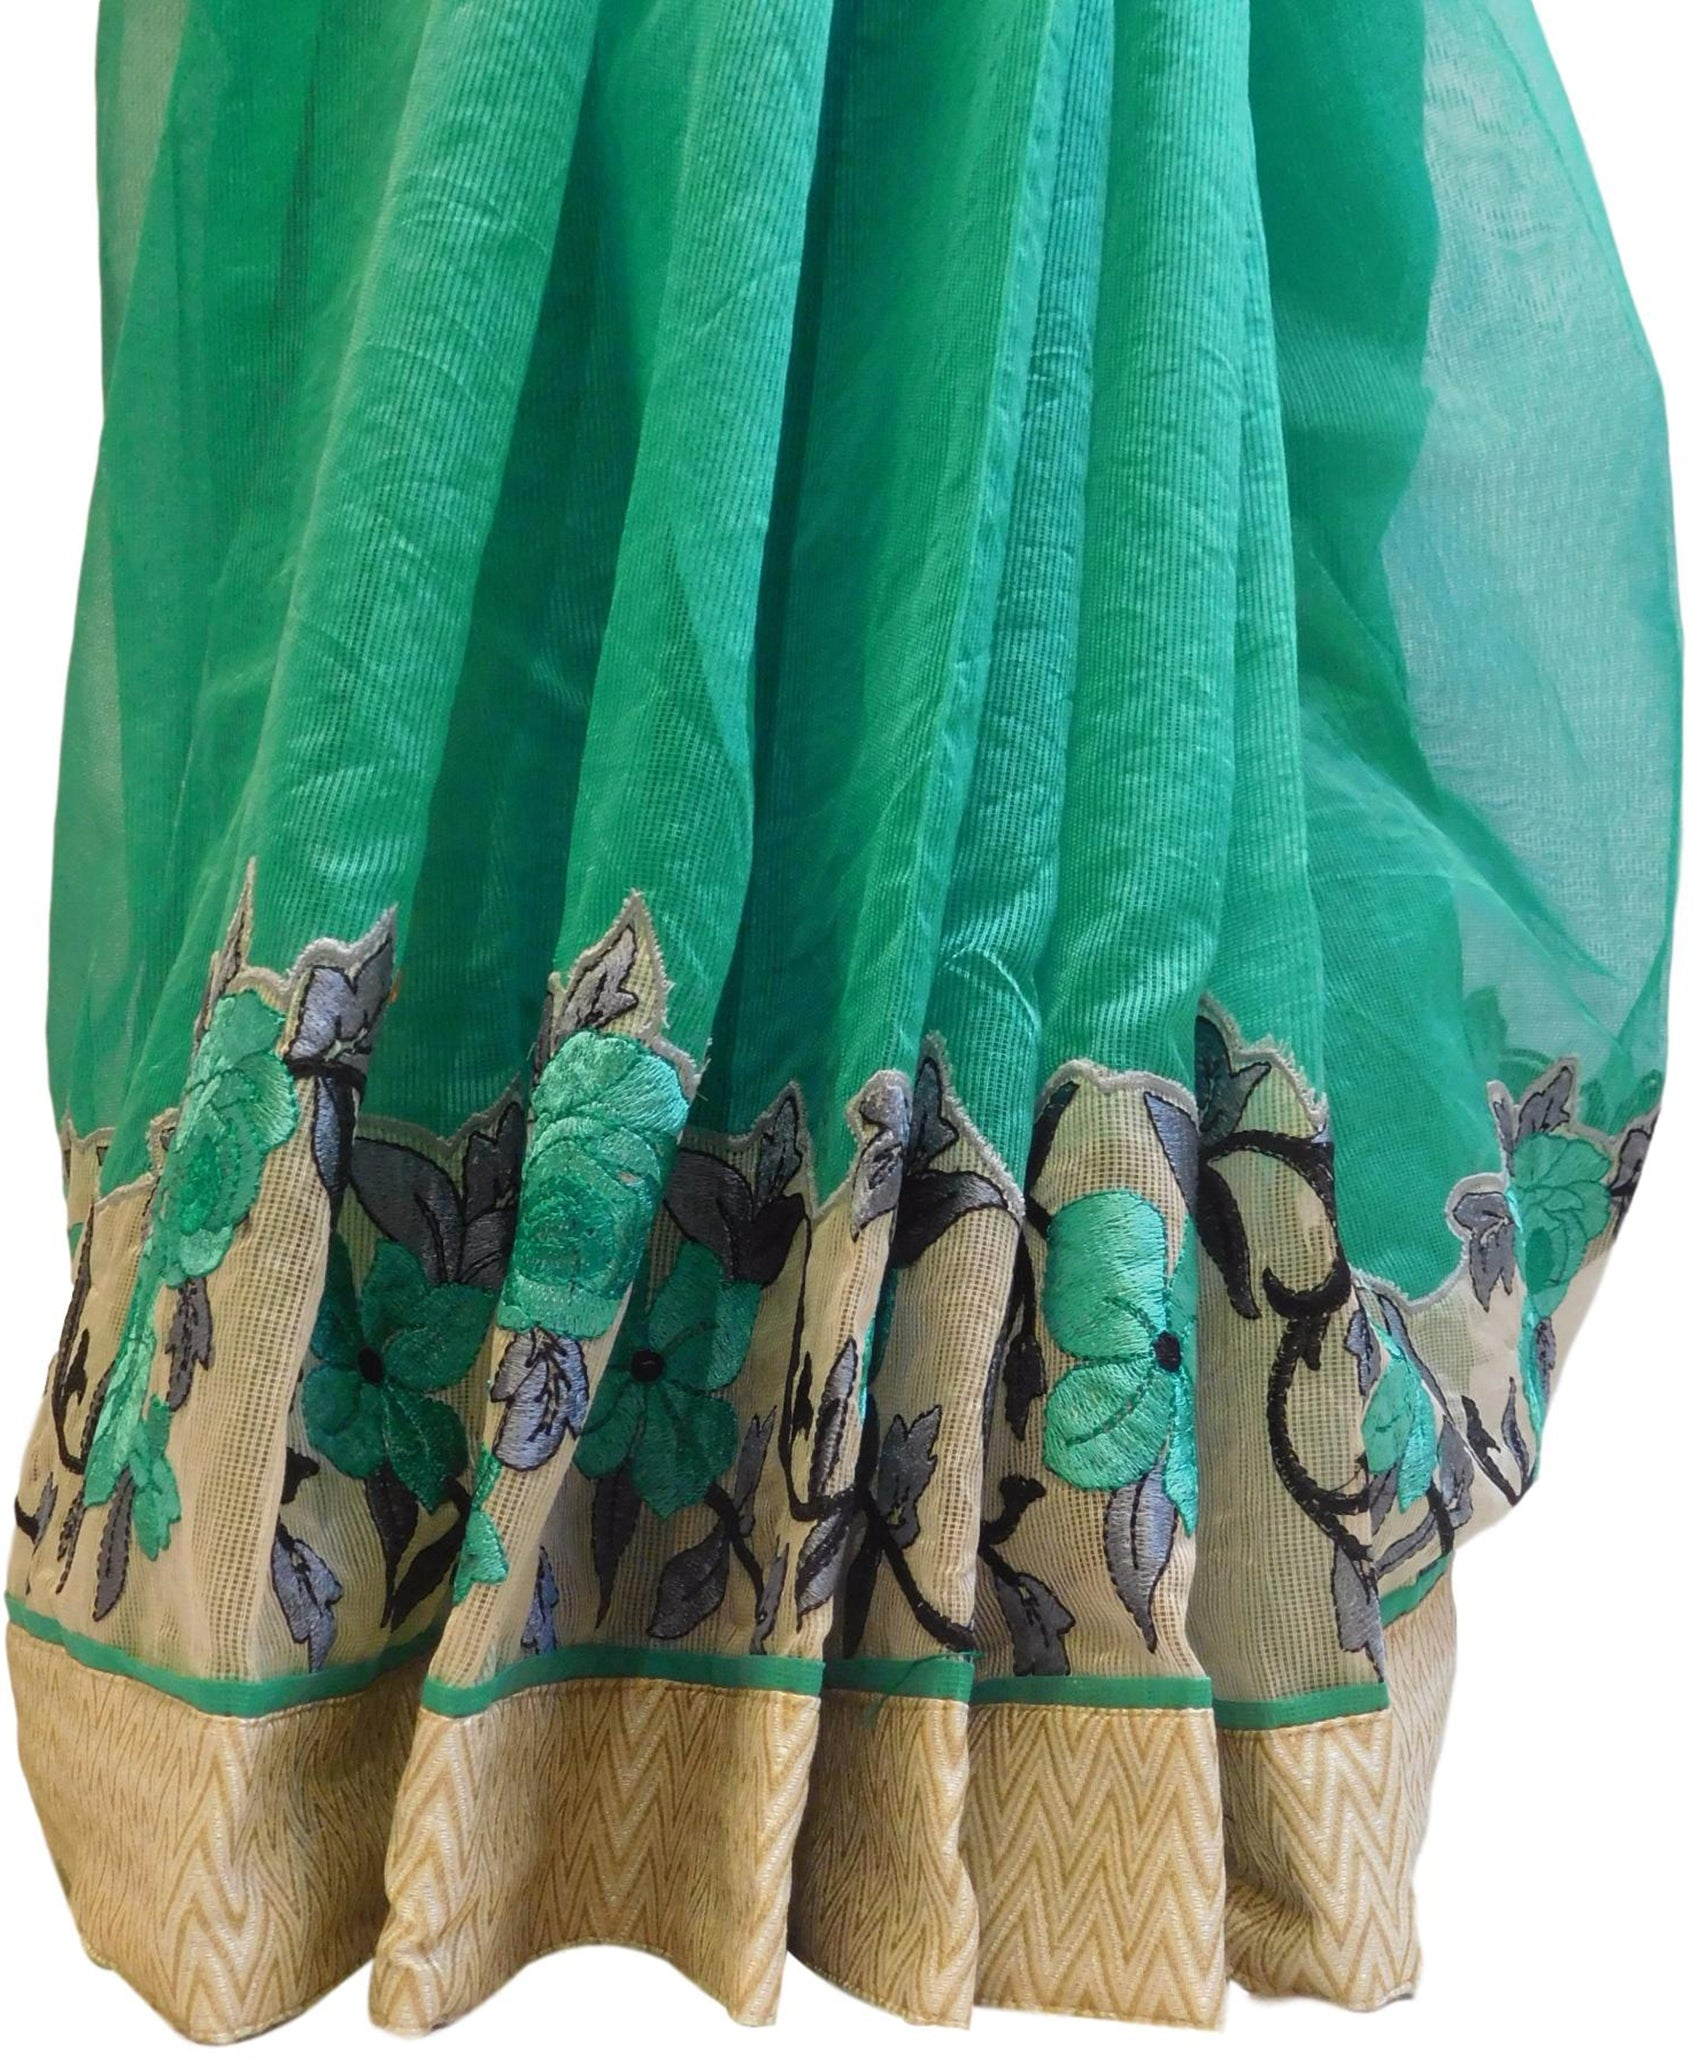 Turquoise Designer PartyWear Pure Supernet (Cotton) Thread Work Saree Sari With Beige Border